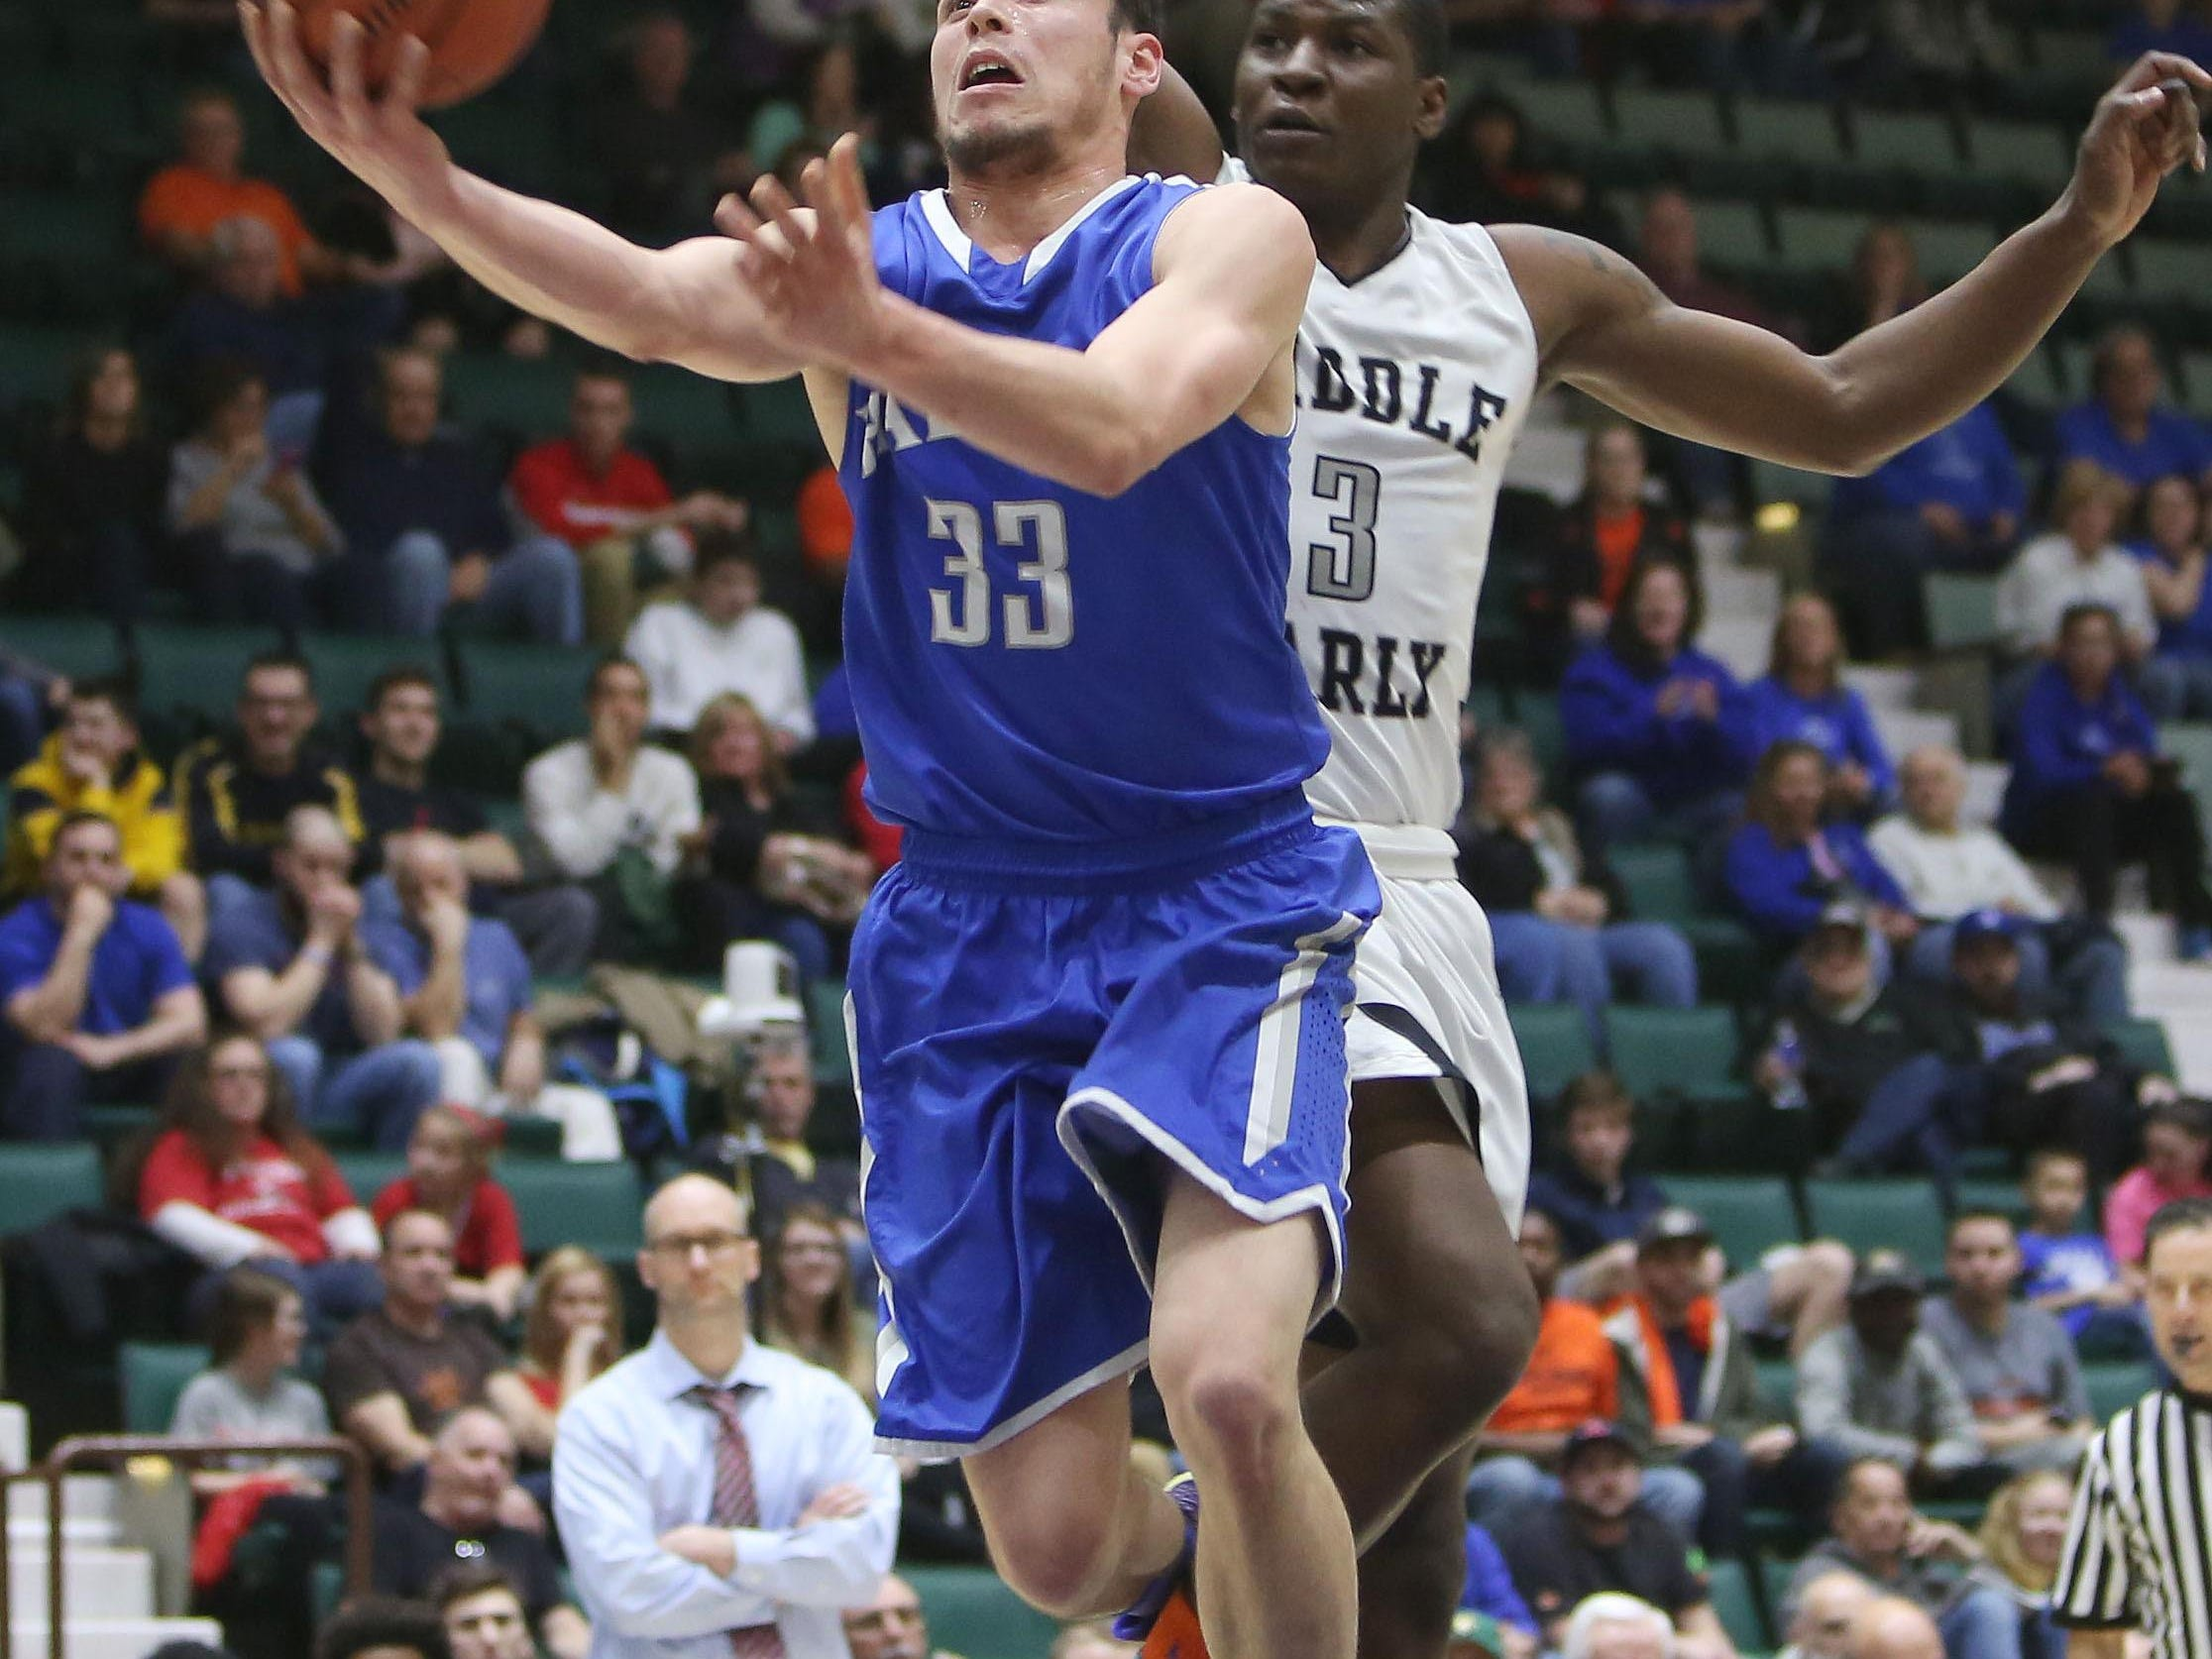 Haldane's Will Zuvic drives to the basket in front of Middle Early College's Gary Foster during the Class C state championship game at the Glens Falls Civic Center Saturday. Middle Early College won the game 82-40.